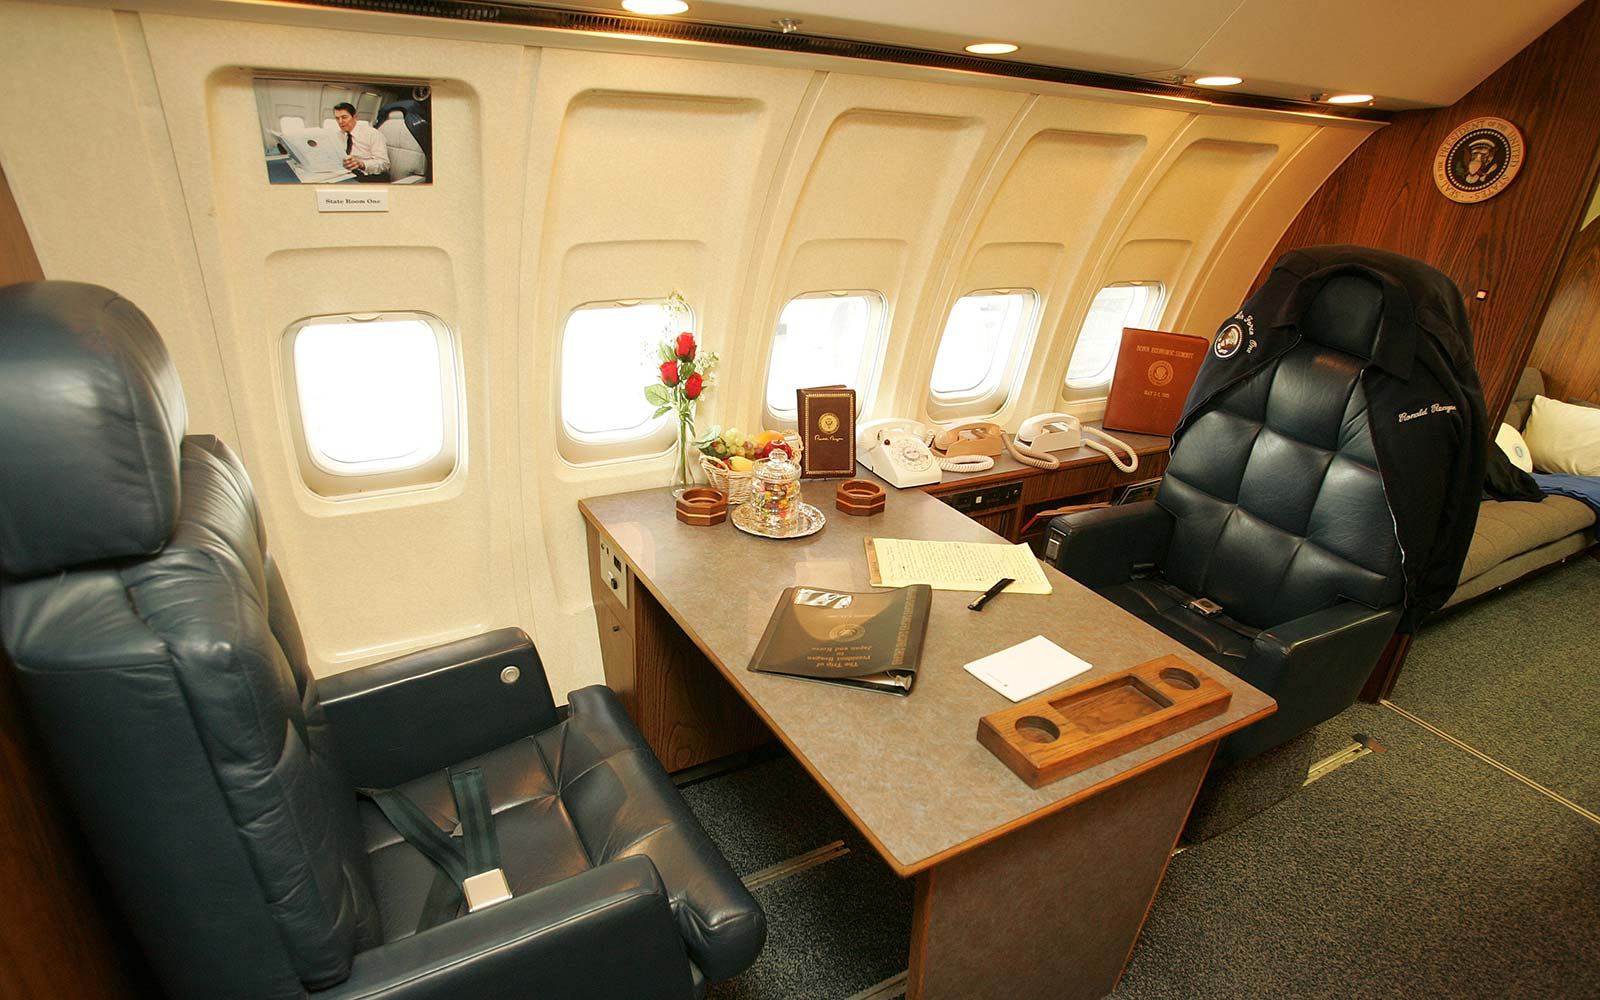 Ronald Reagan Air Force One interior Presidential desk museum